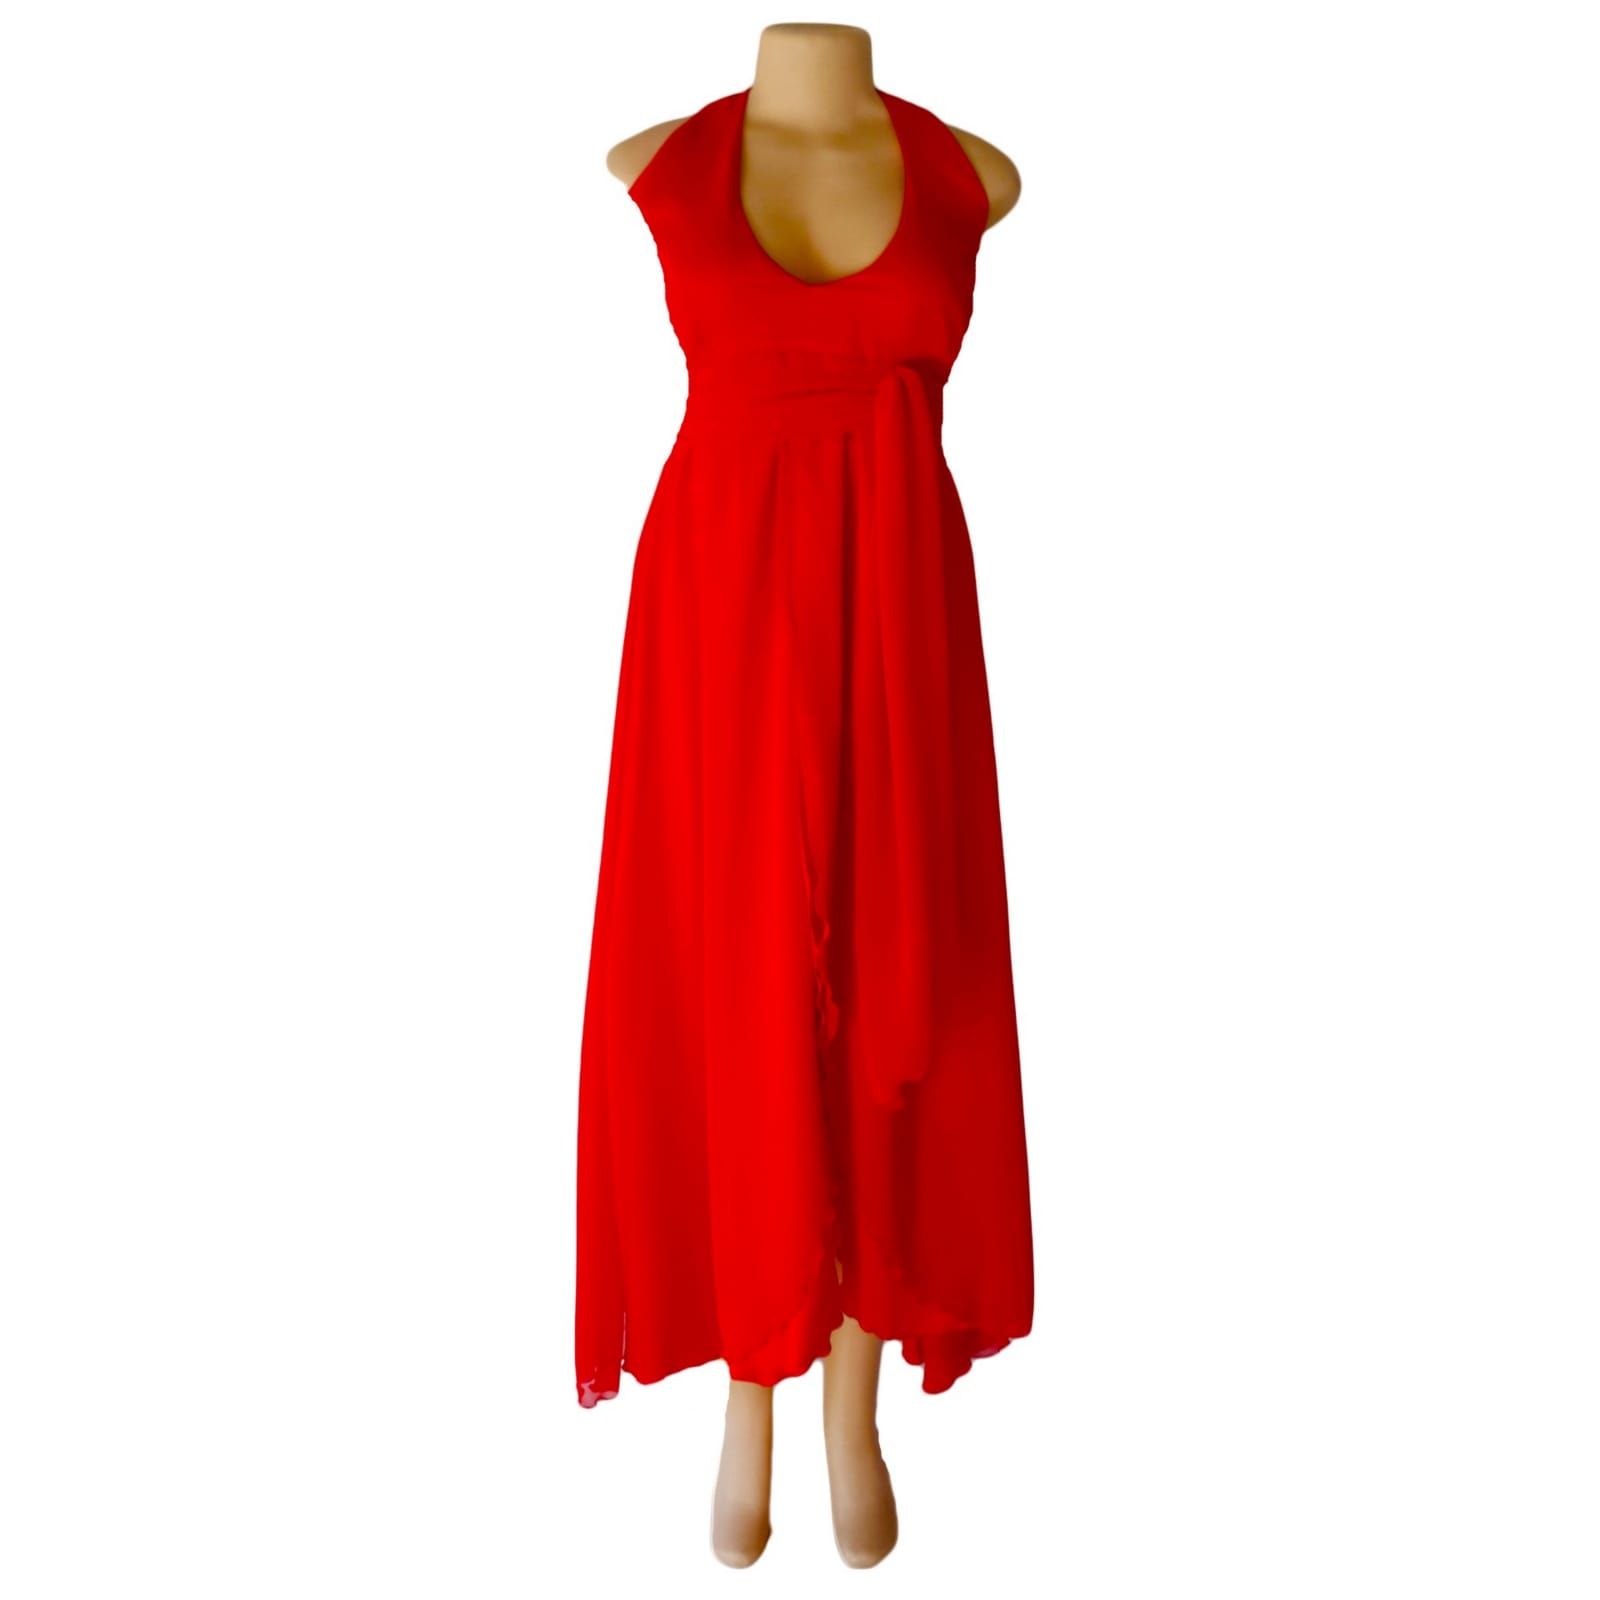 Bright red halter neck evening dress 4 bright red halter neck evening dress with a satin and chiffon crossed layer creating a double slit. A ruched belt